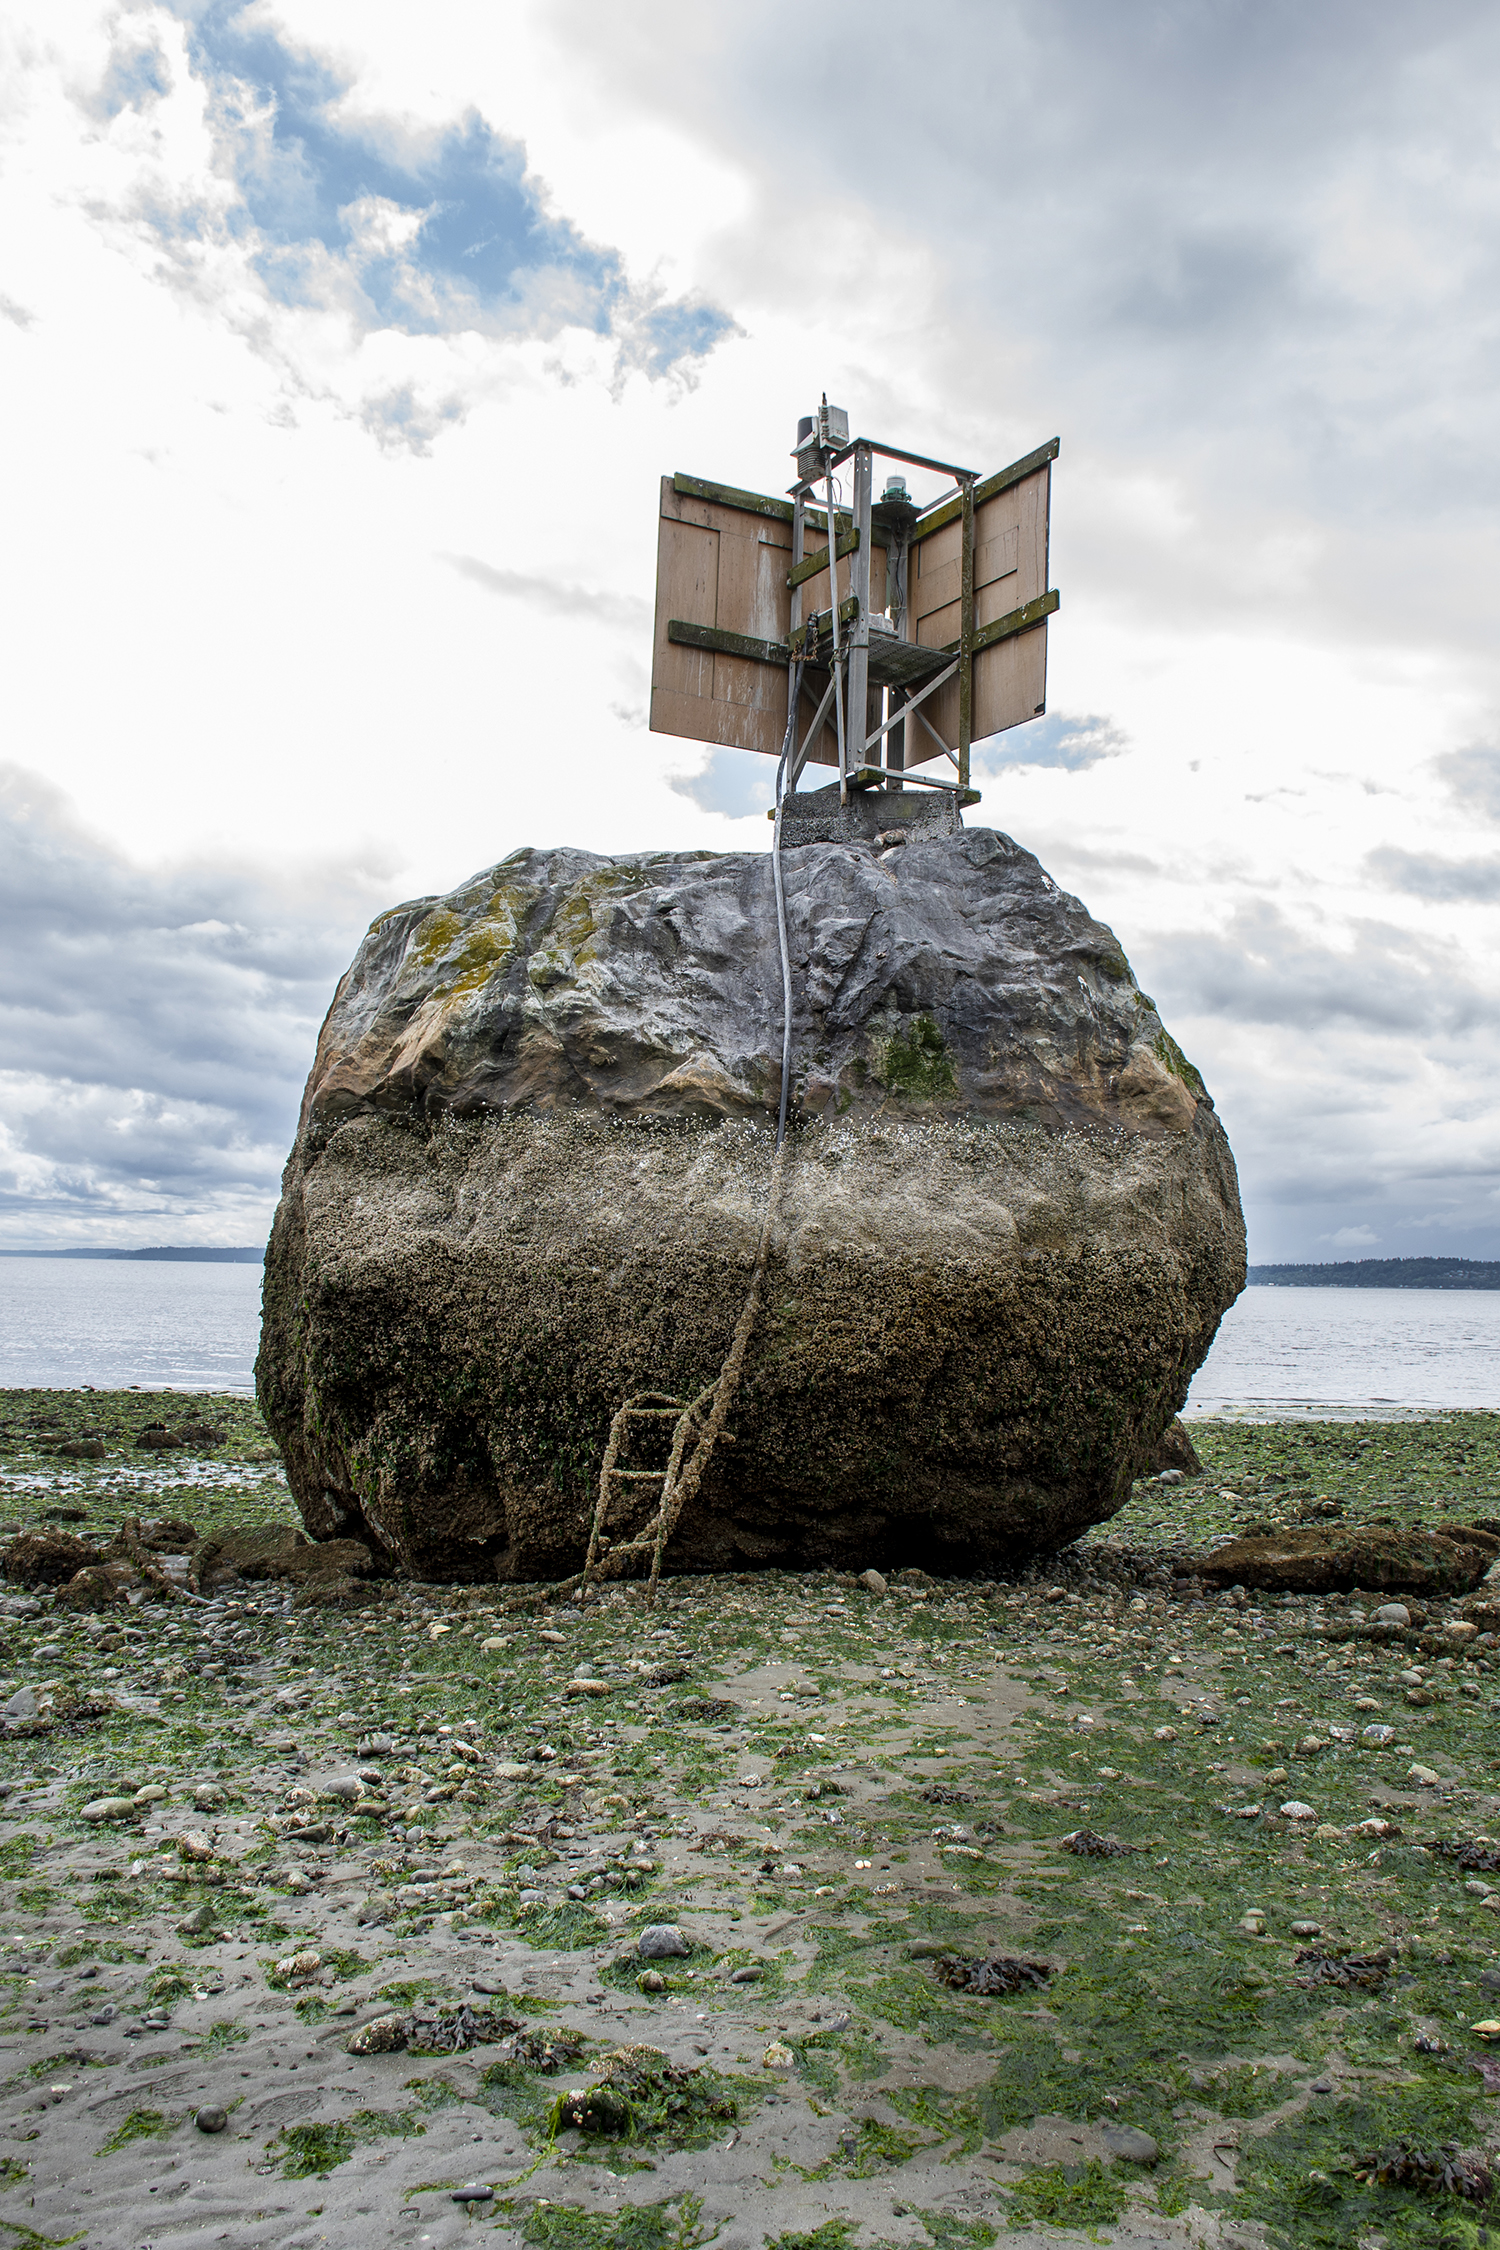 When the tide is at its lowest, walk right up to the boulder and marvel at its size. Or visit at high tide to see just how much water covers the massive stone. (Image: Rachael Jones / Seattle Refined)